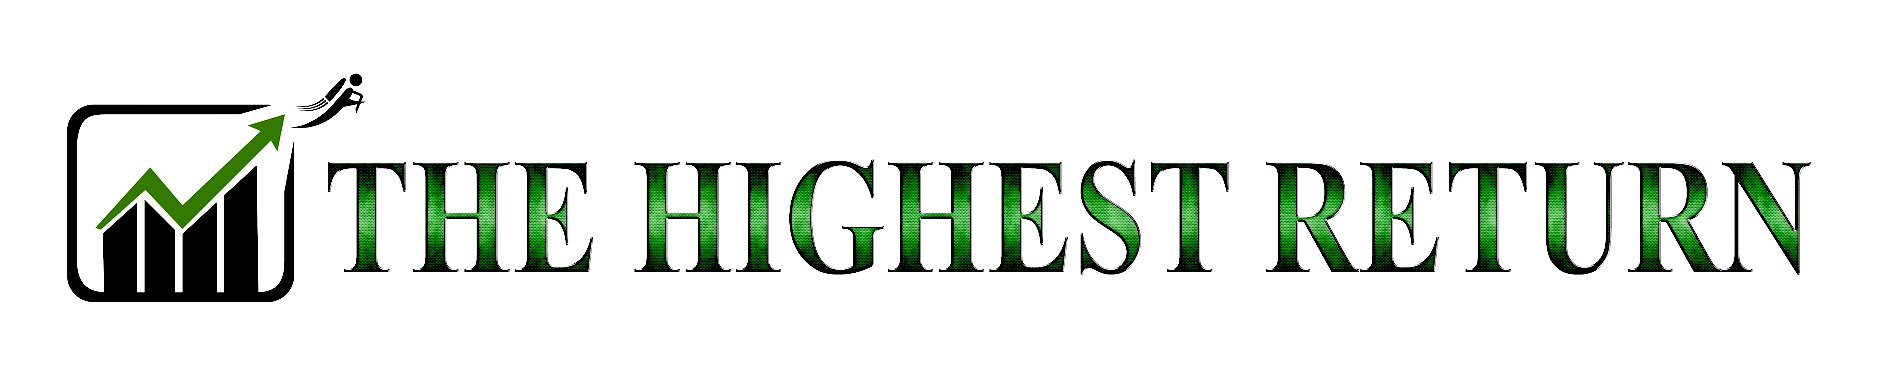 The Highest Return Investments Logo